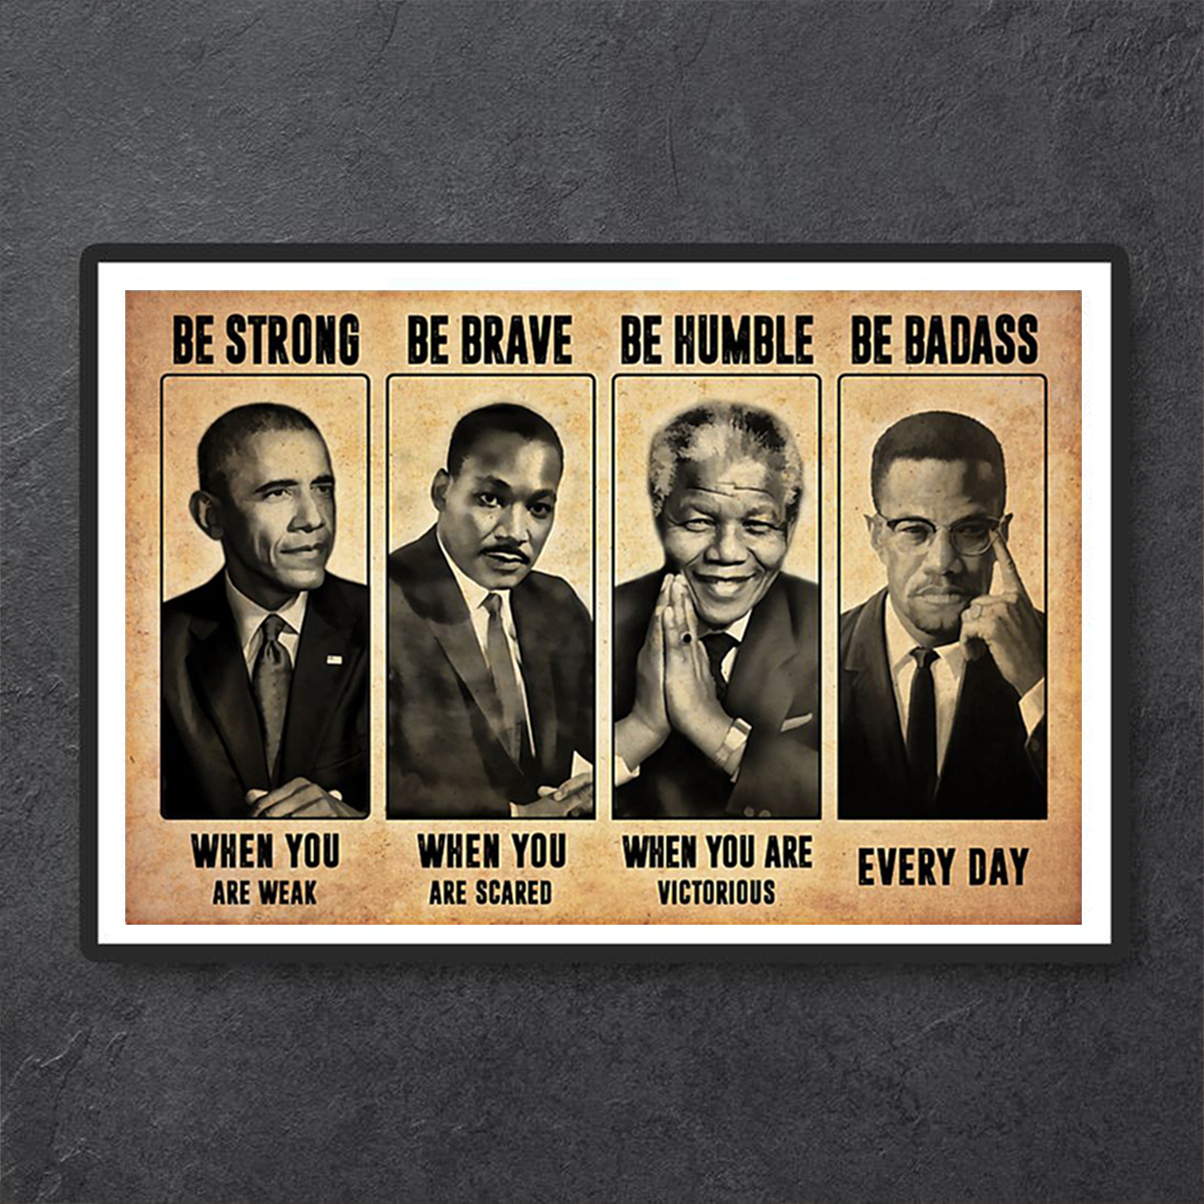 The civil right leads be strong be brave be humble be badass poster A1